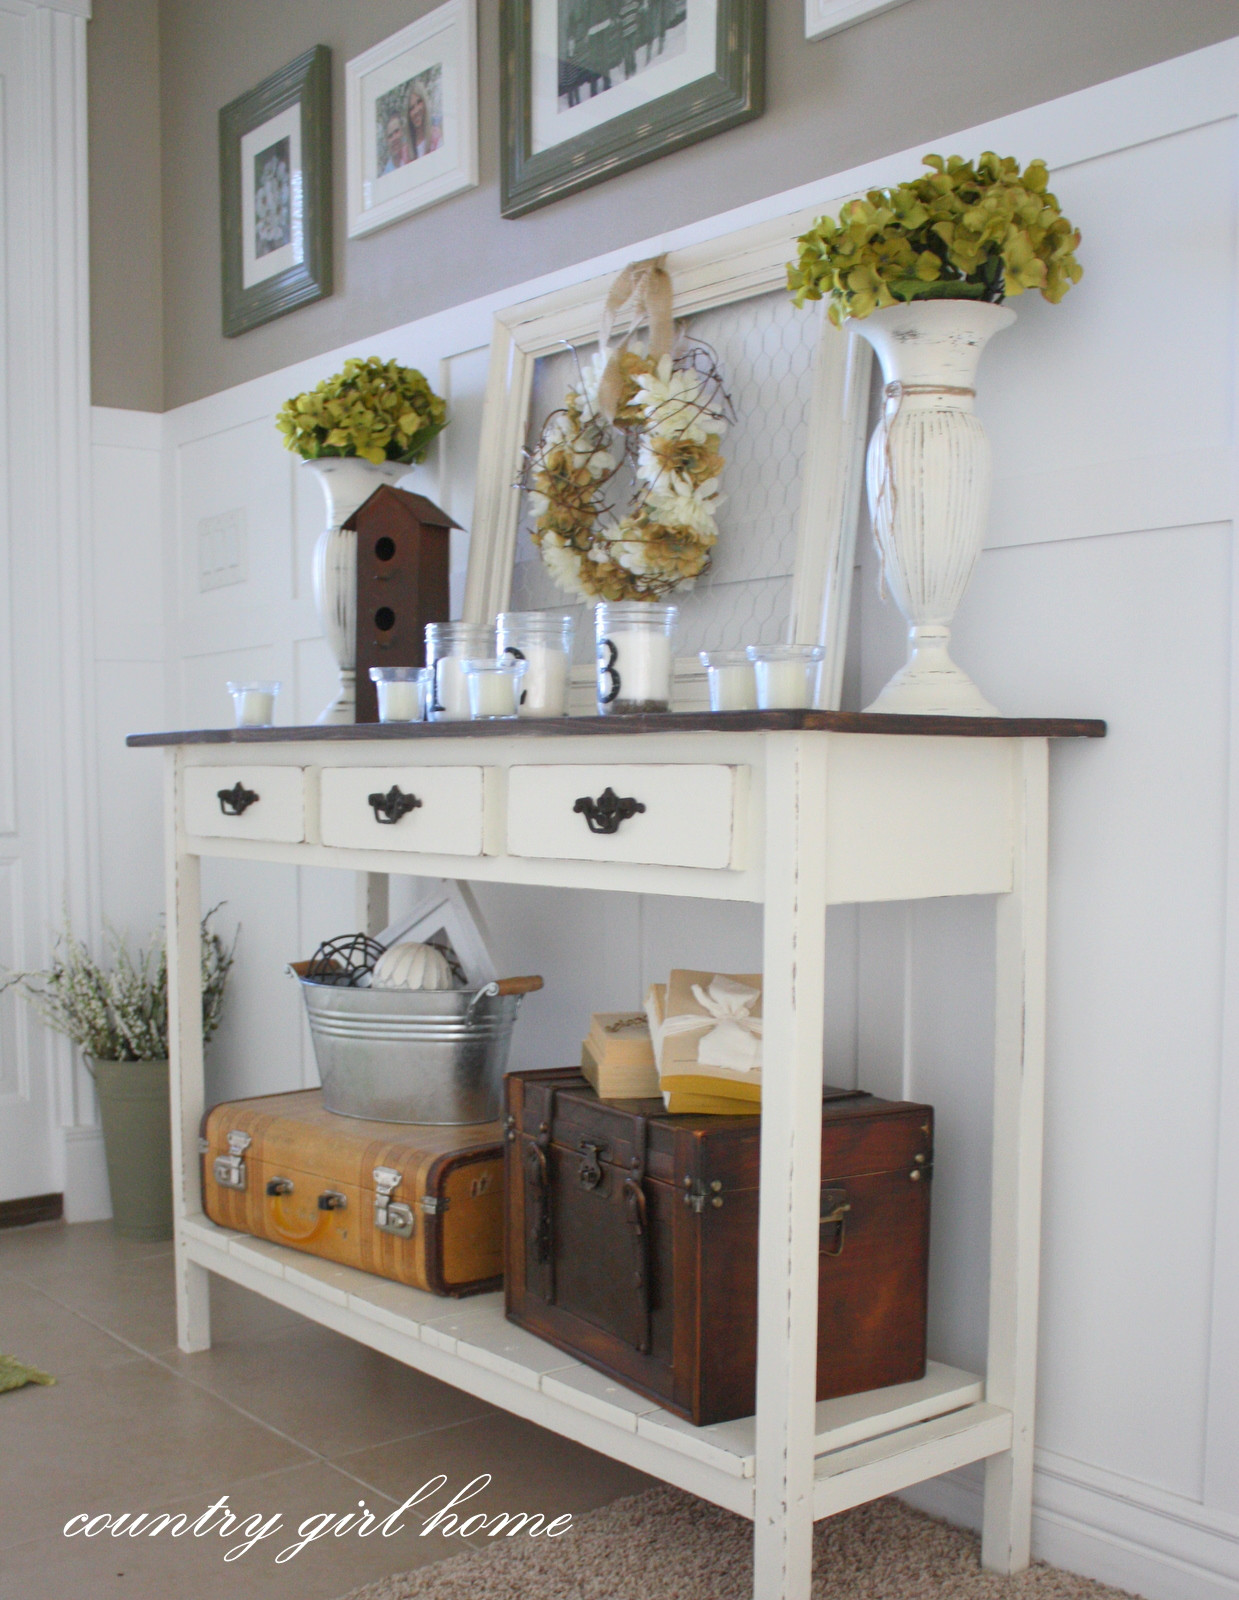 Best ideas about Entrance Table Ideas . Save or Pin COUNTRY GIRL HOME added onto my DIY entry table Now.